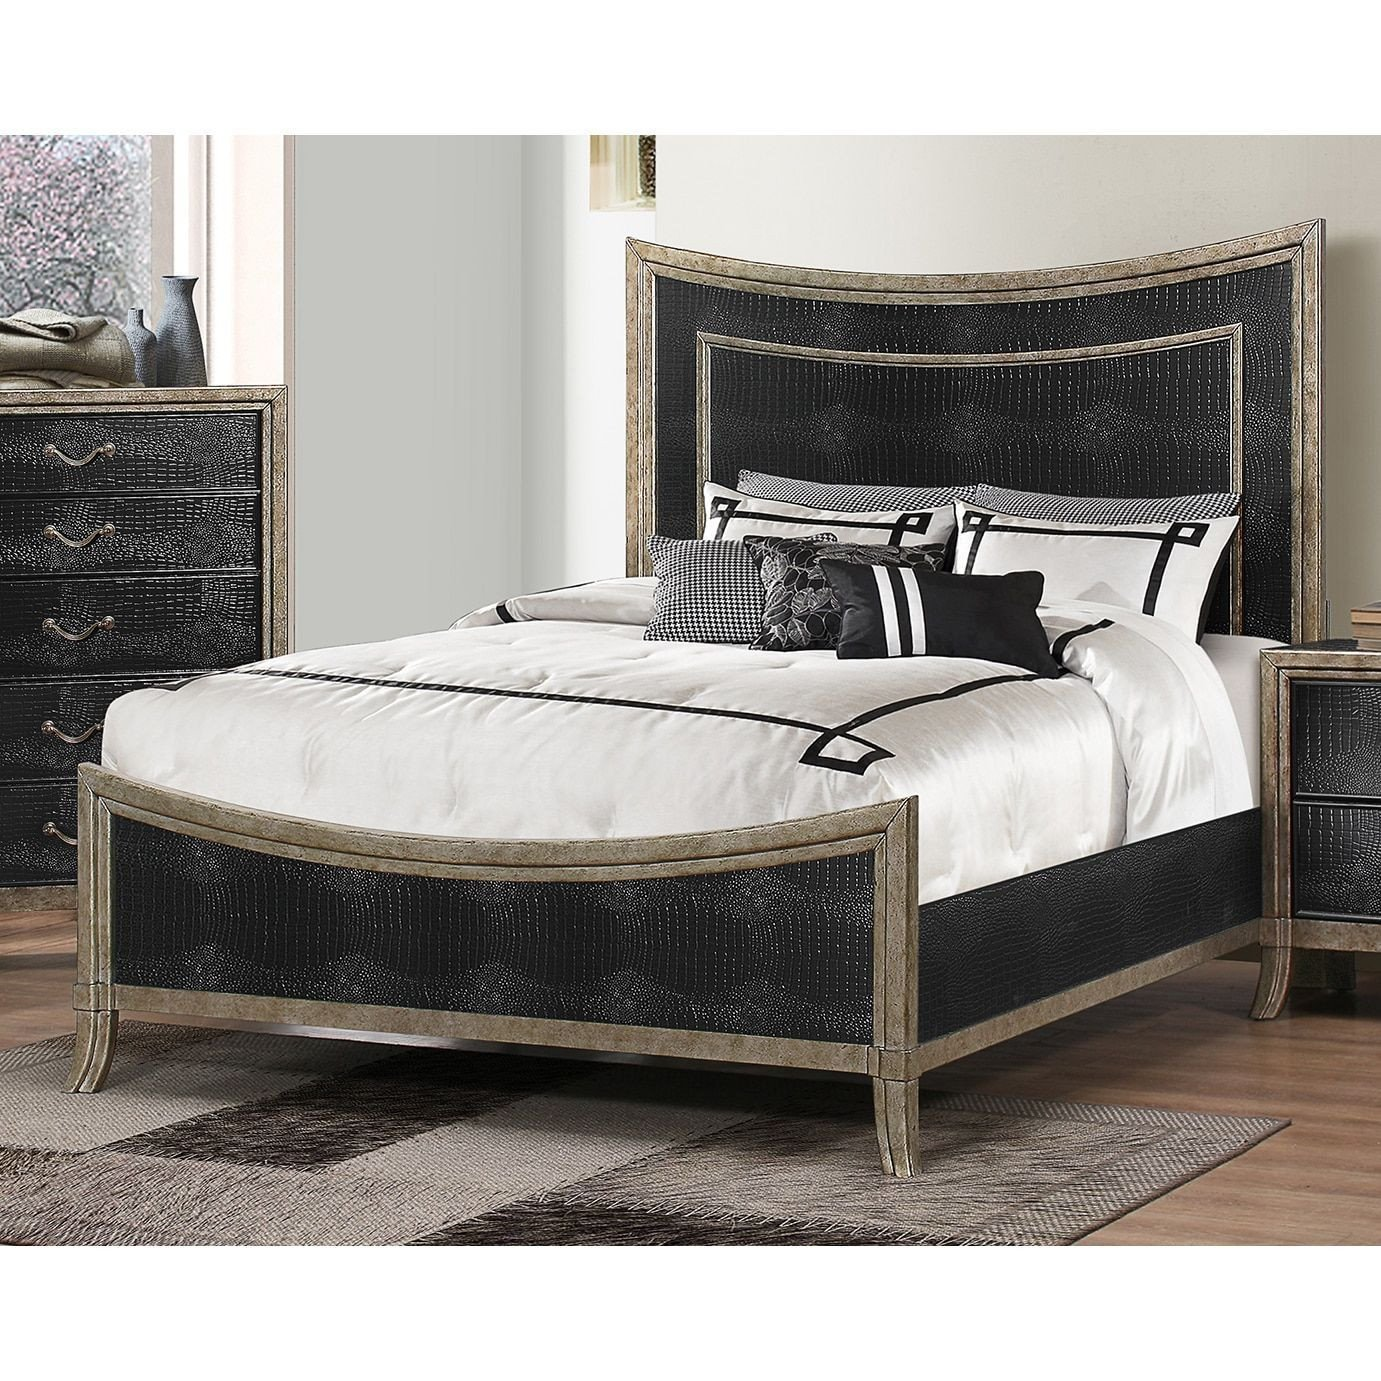 Platform Bedroom Set Queen Best Of Simmons San Juan Collection Queen King Bed Queen Black